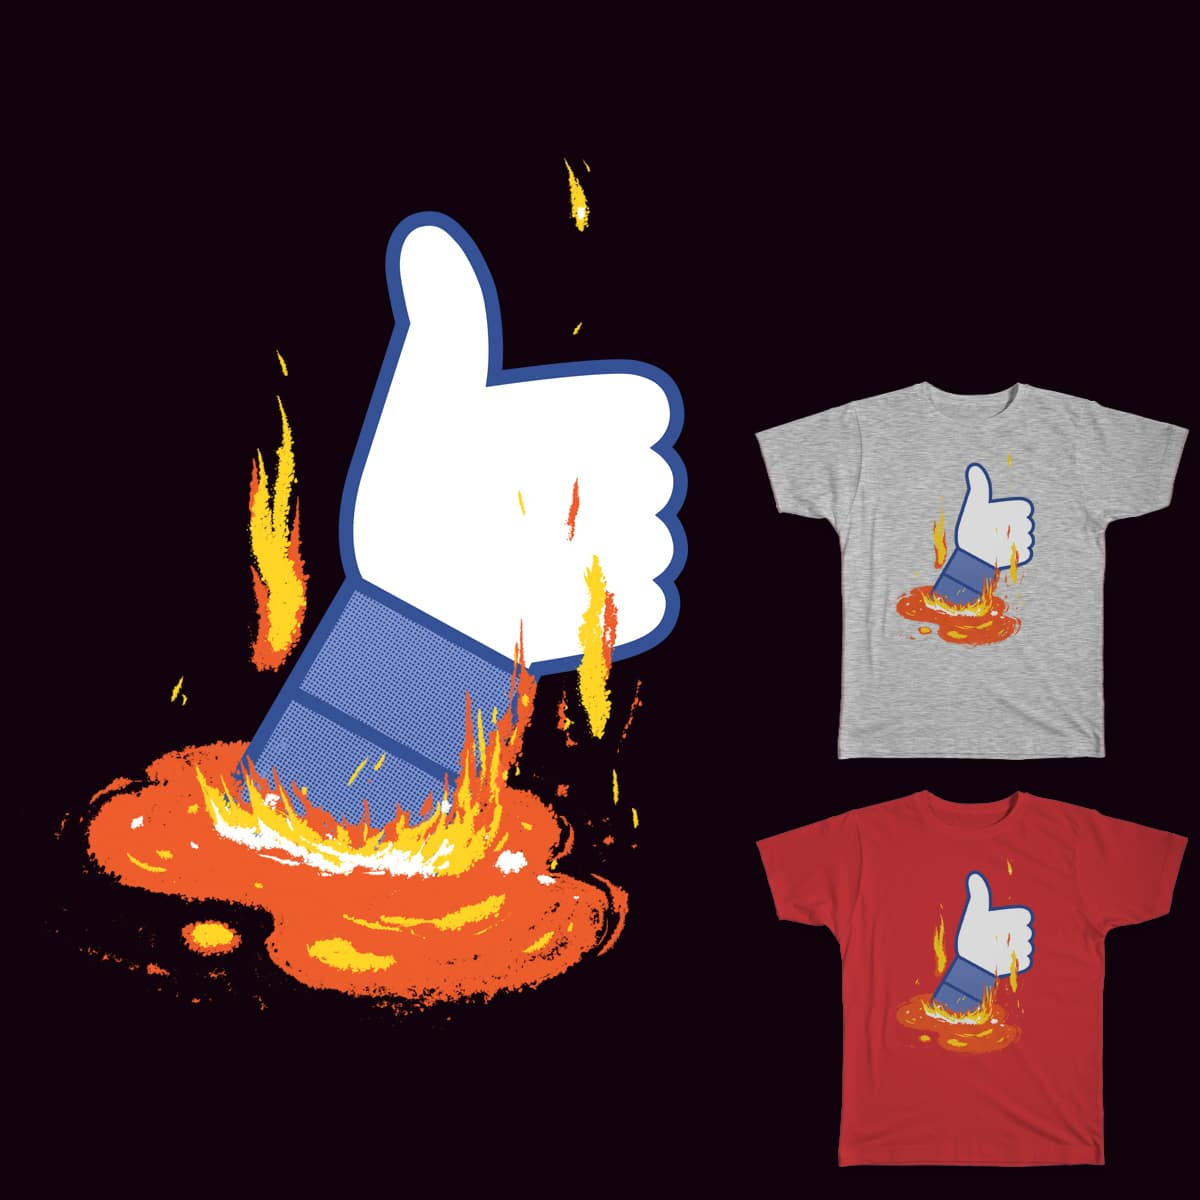 Judgment Day by mike bautista on Threadless